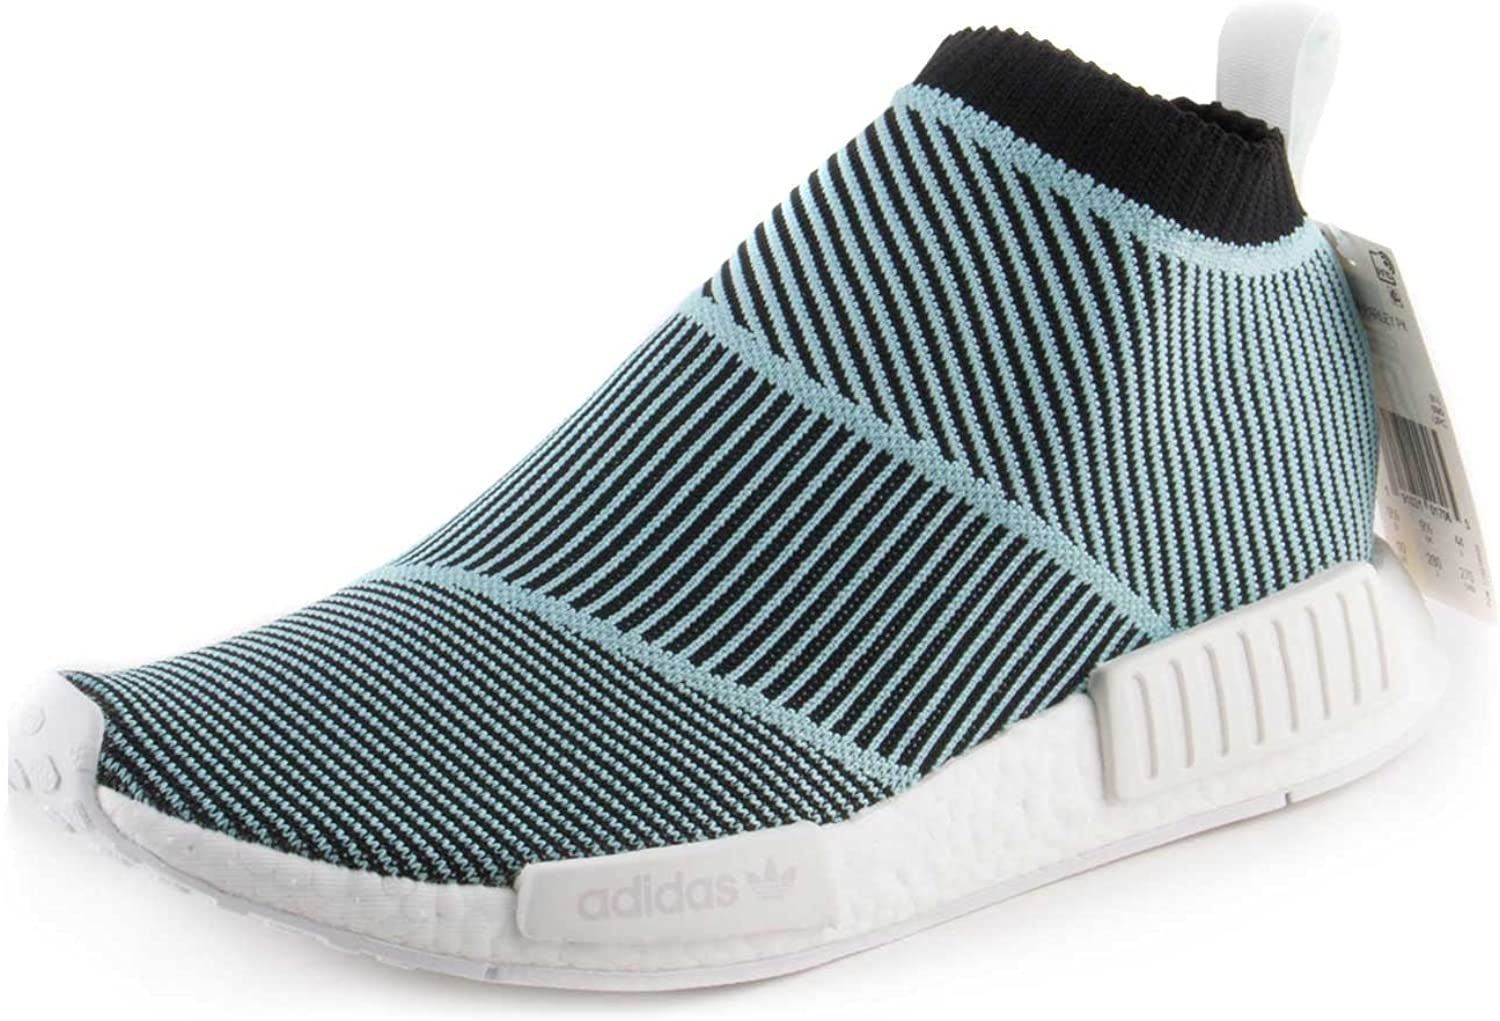 Calvo Solitario esférico  Amazon.com | adidas Mens NMD CS1 PK x Parley Slip On Sneakers Casual  Sneakers, | Fashion Sneakers